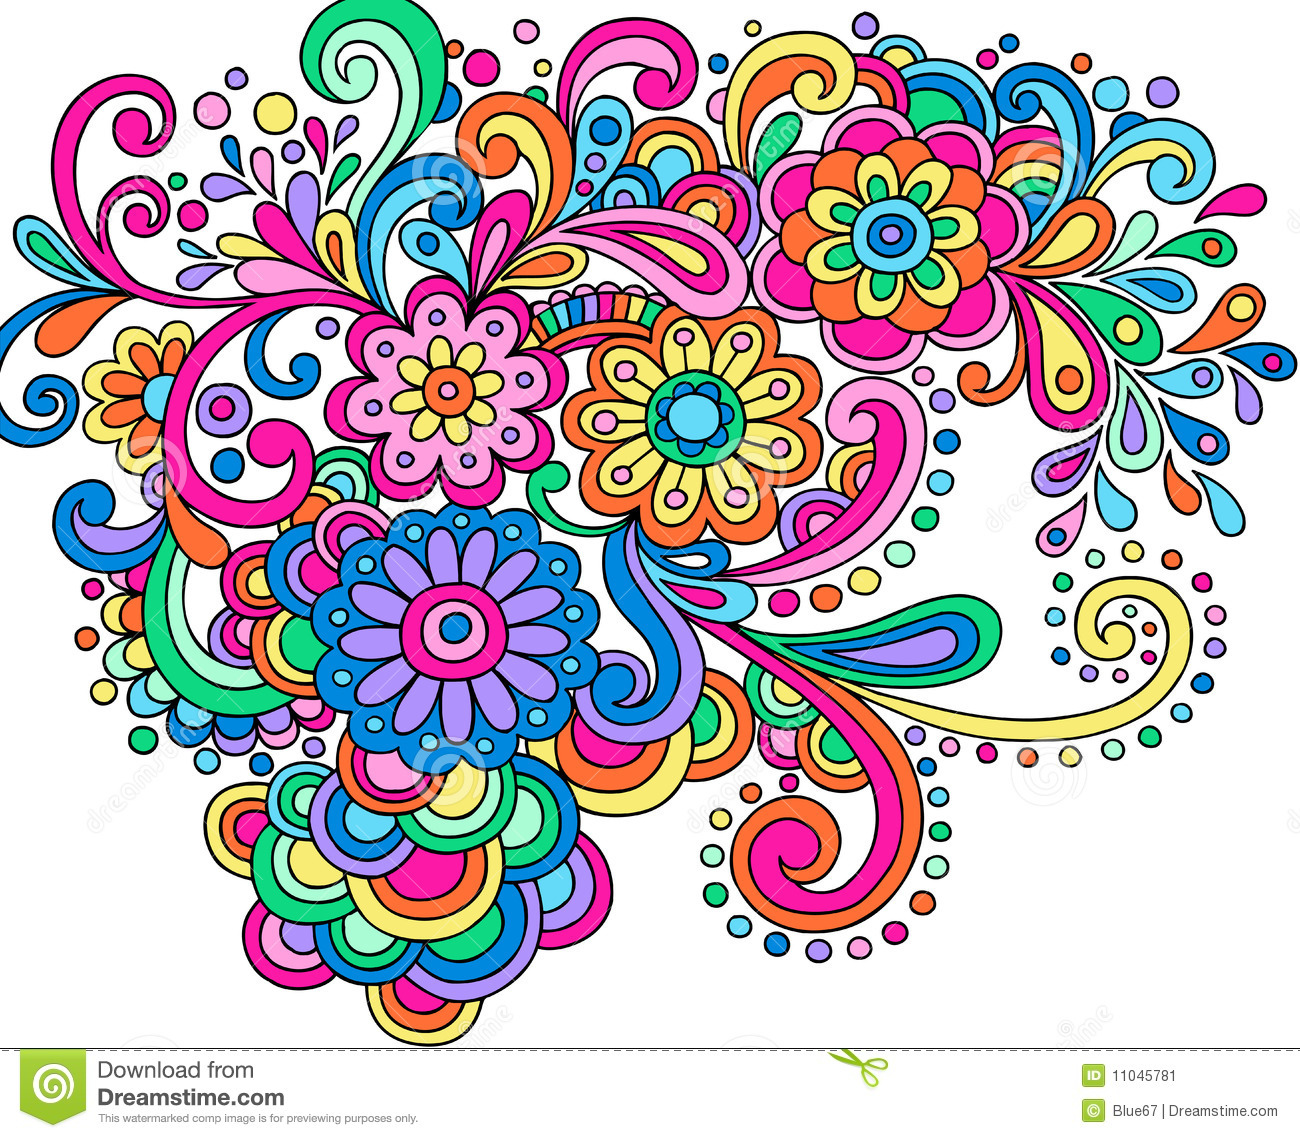 13 Rainbow Swirl Floral Vector Images